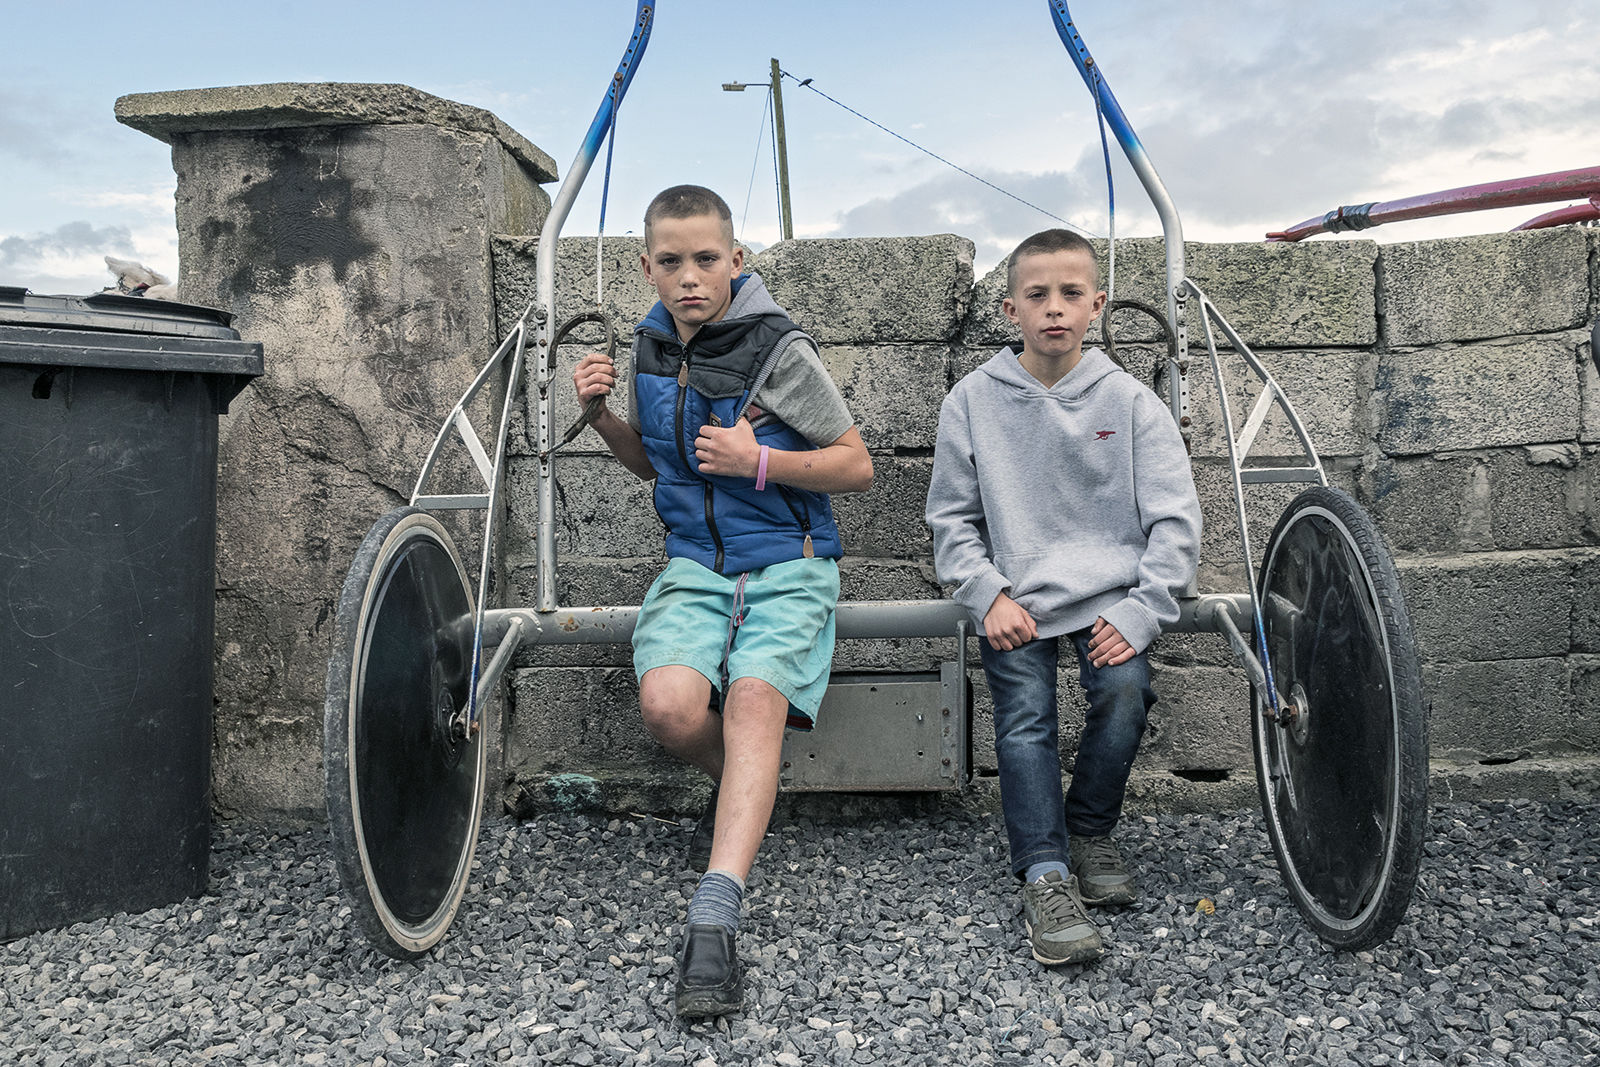 Rocky and Jimmy, Reilly Brothers, Tipperary, Ireland 2019